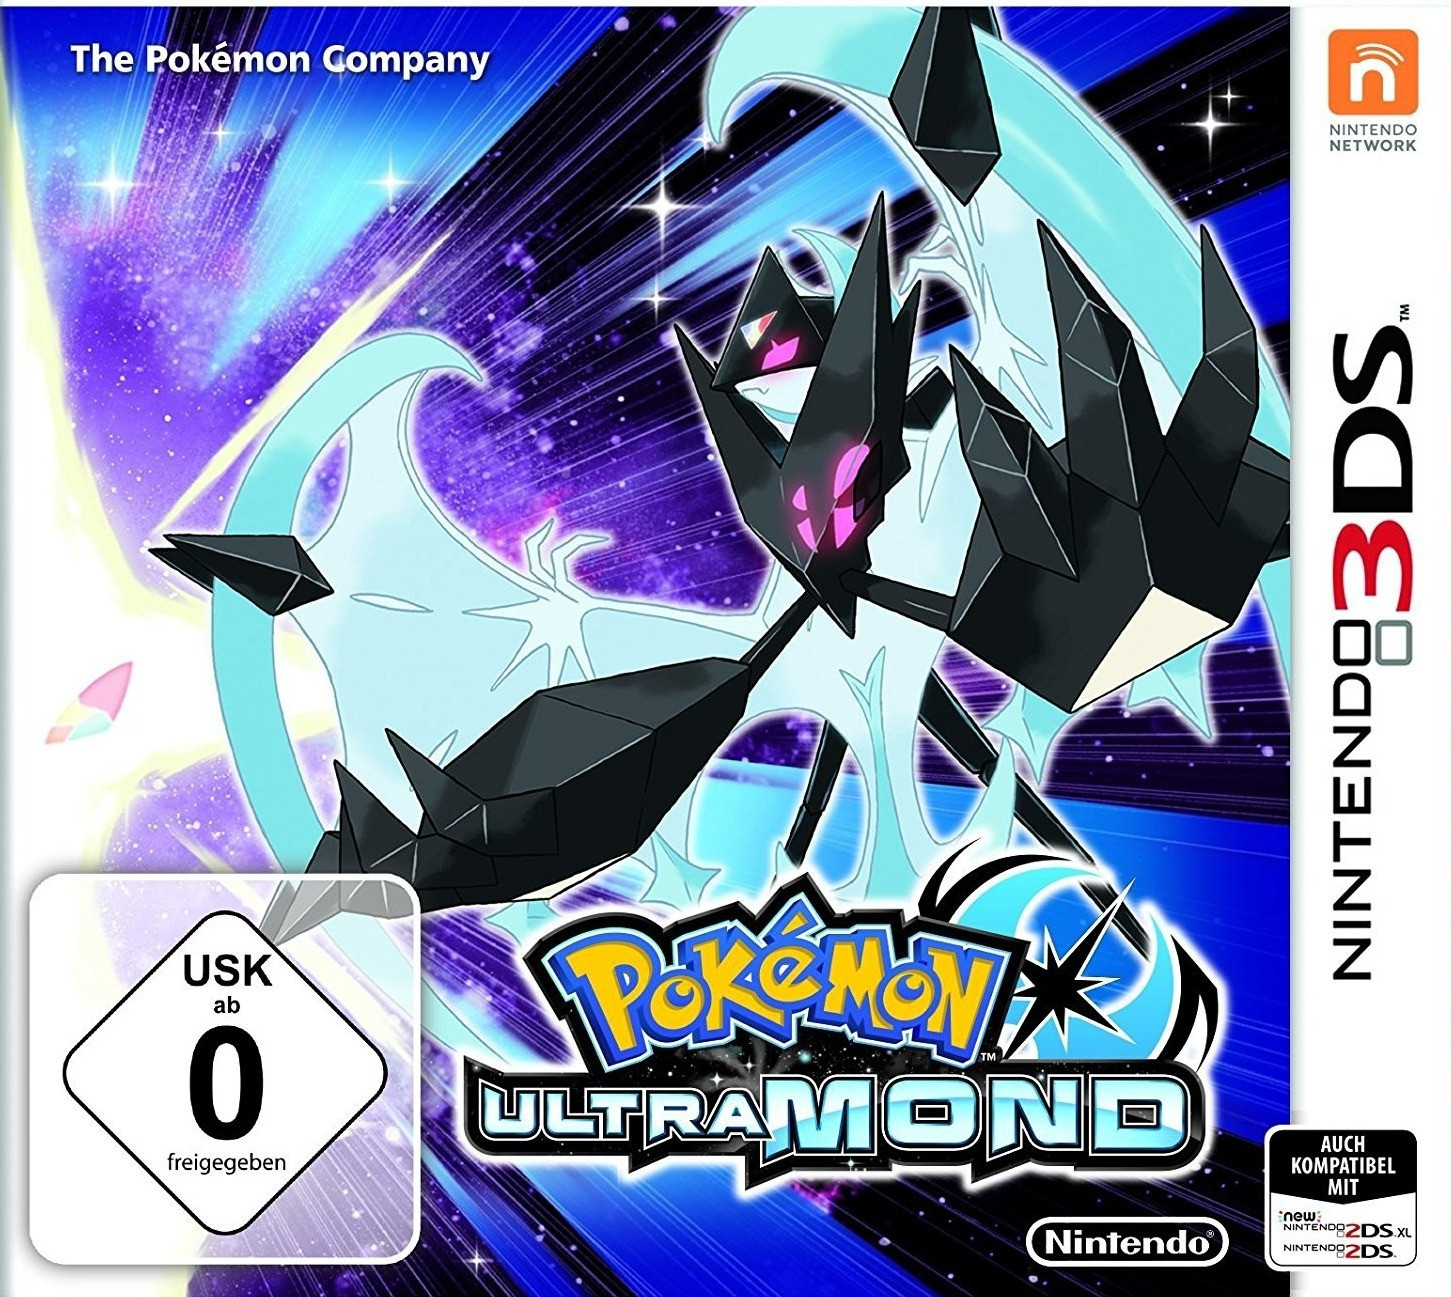 Pokémon: Ultramond (3DS)